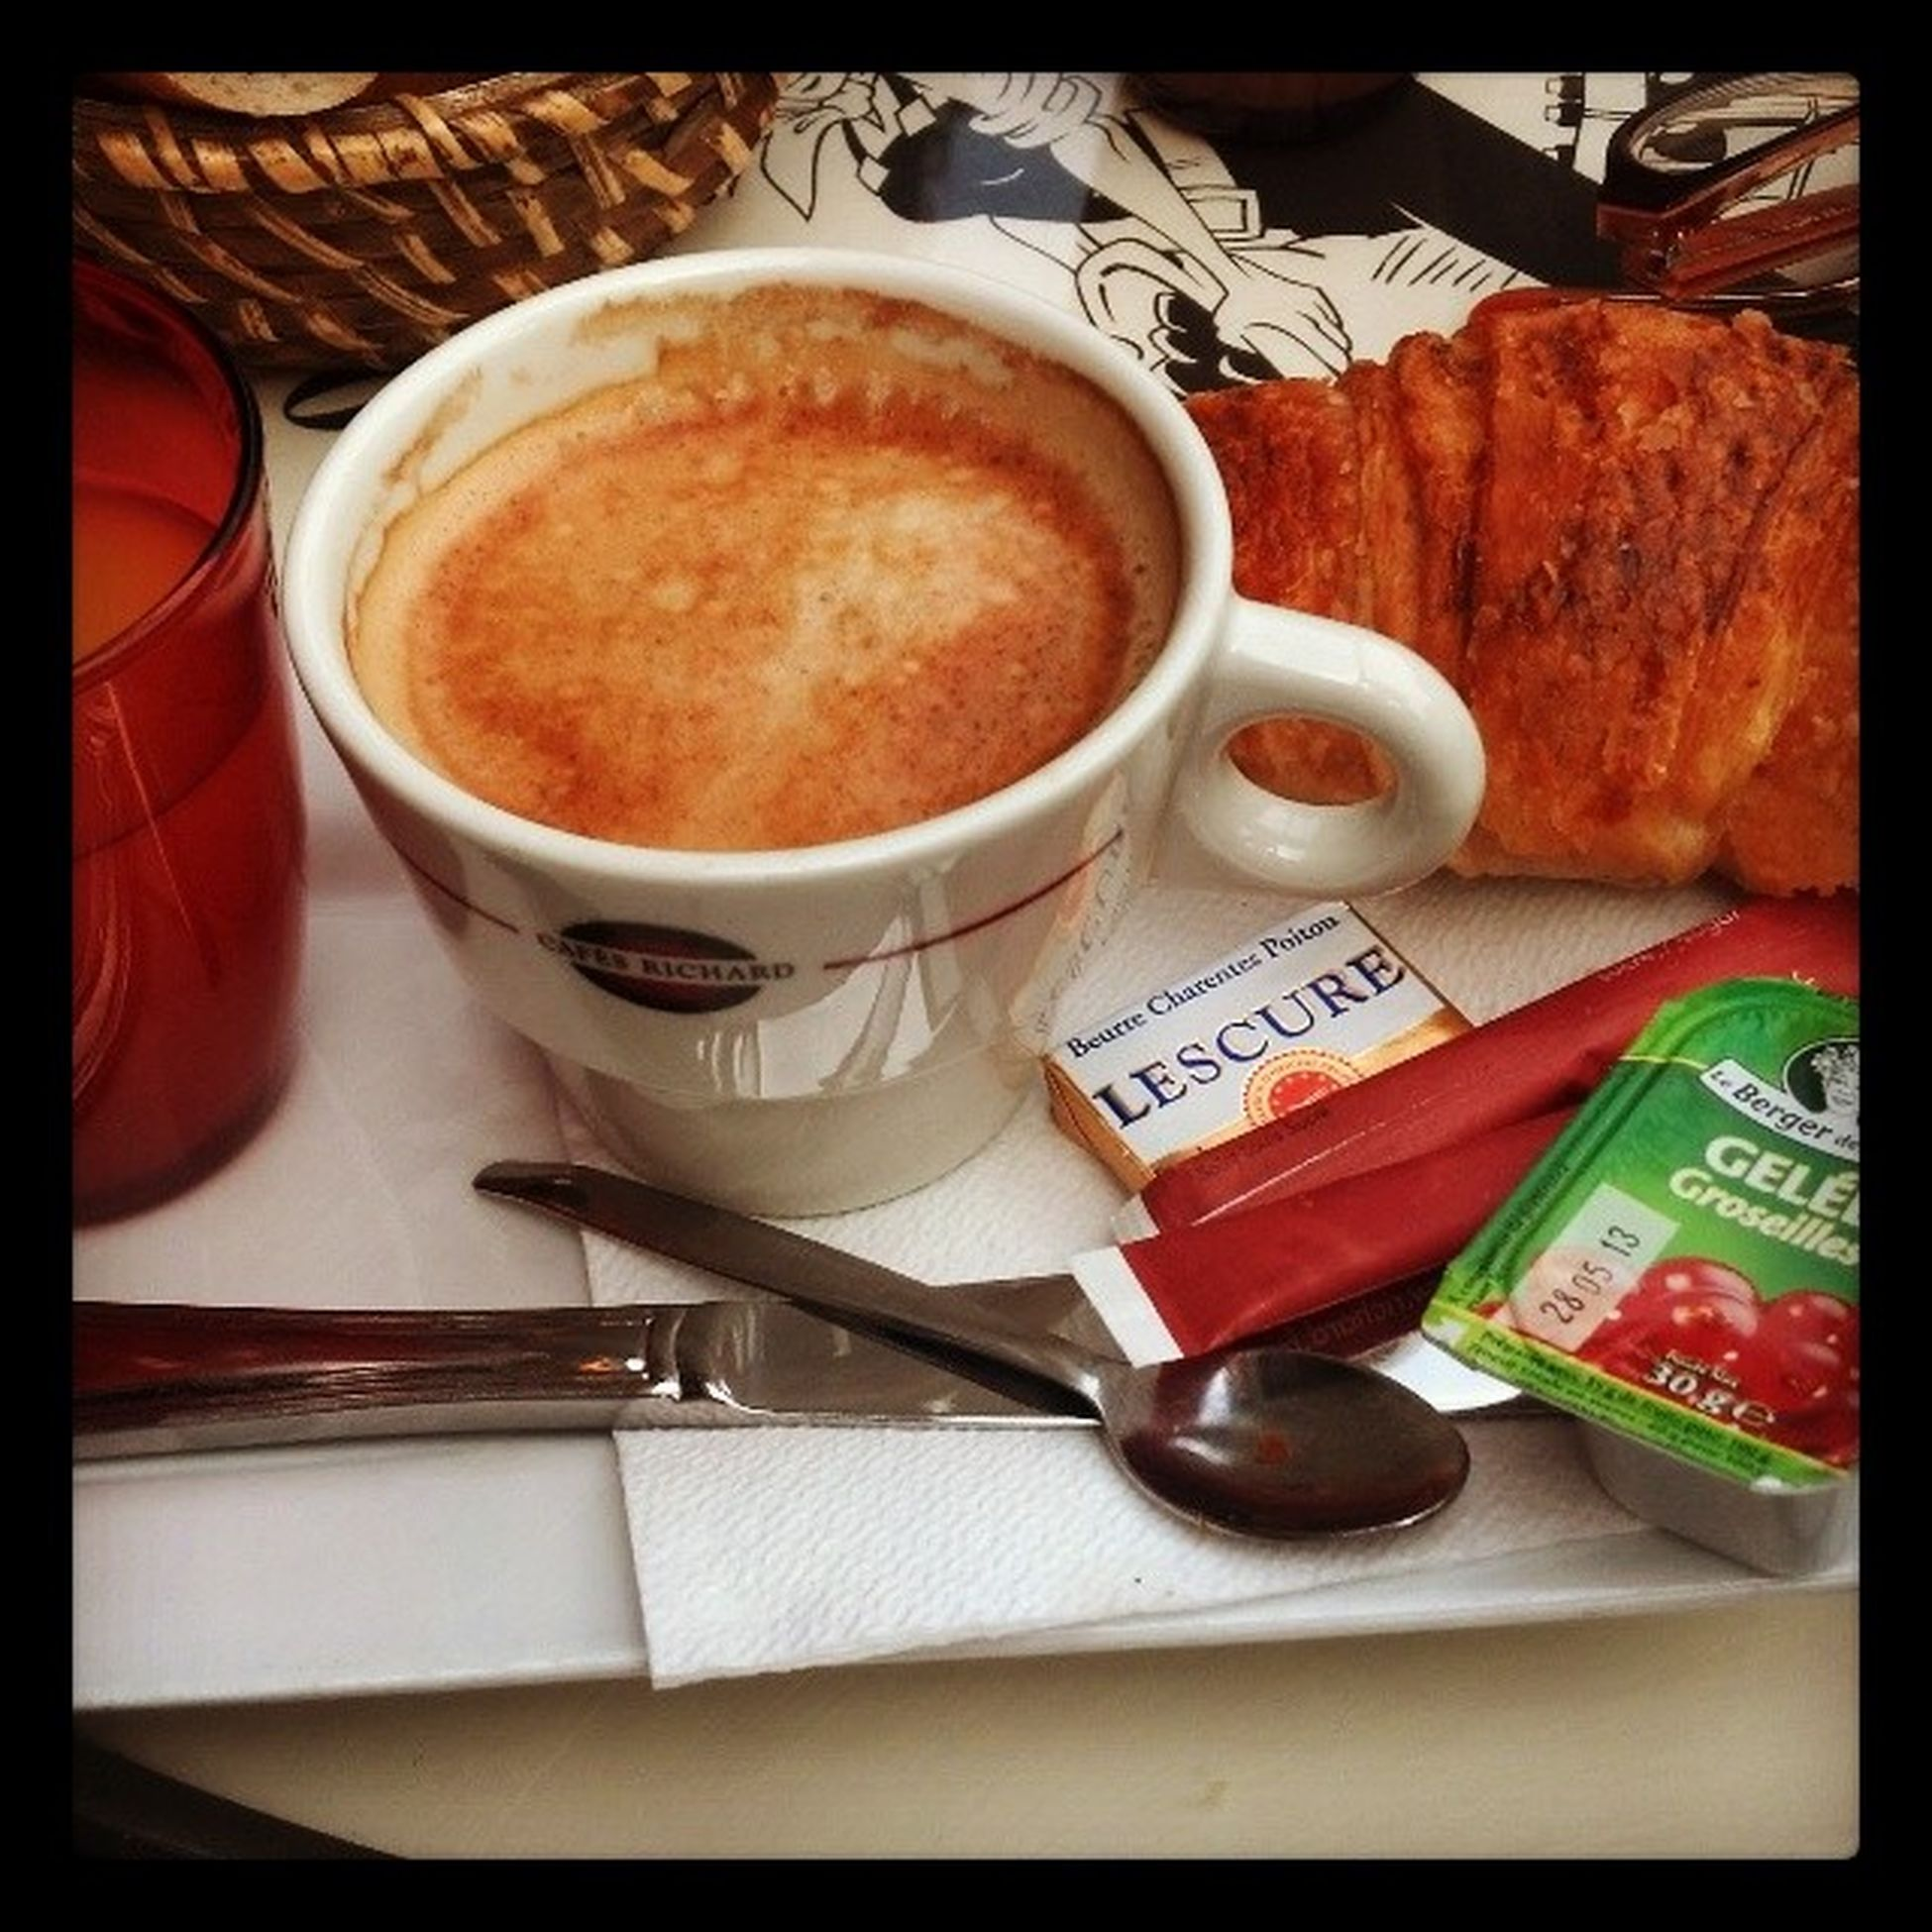 A TBT  pic of my morning coffee and croissant in Paris with @any2ndnow. Can't wait to return in 2016 with her and a group of friends for my birthday. :) MyBirthday Whowantstogo Parisdisneyland englandtoo